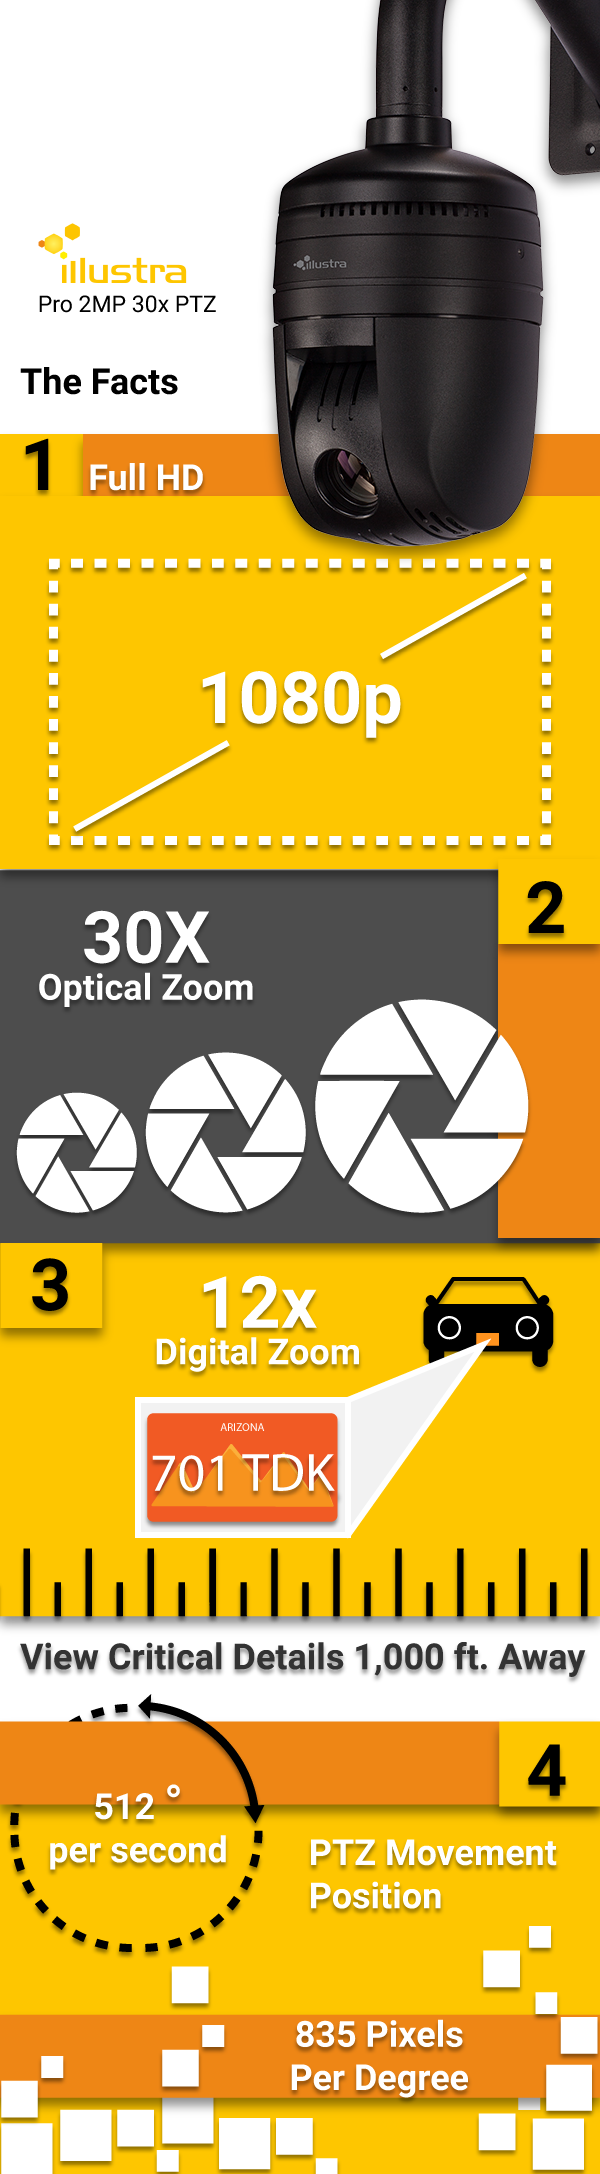 Illustra Pro 2MP 30X PTZ Infographic